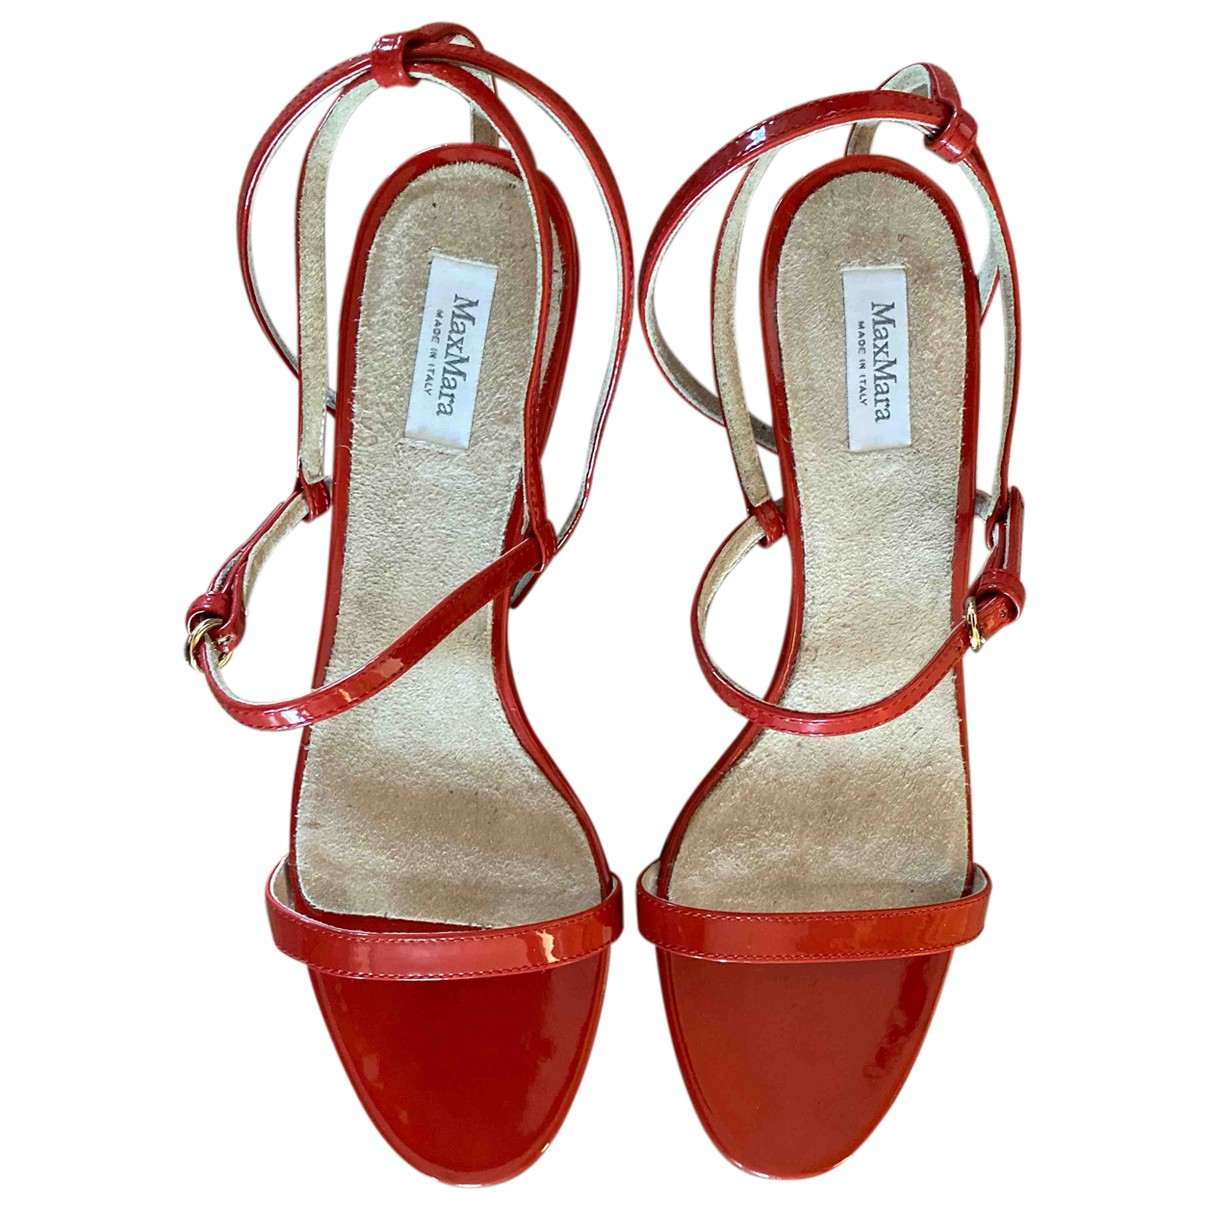 Max Mara \N Red Leather Sandals for Women 39 EU